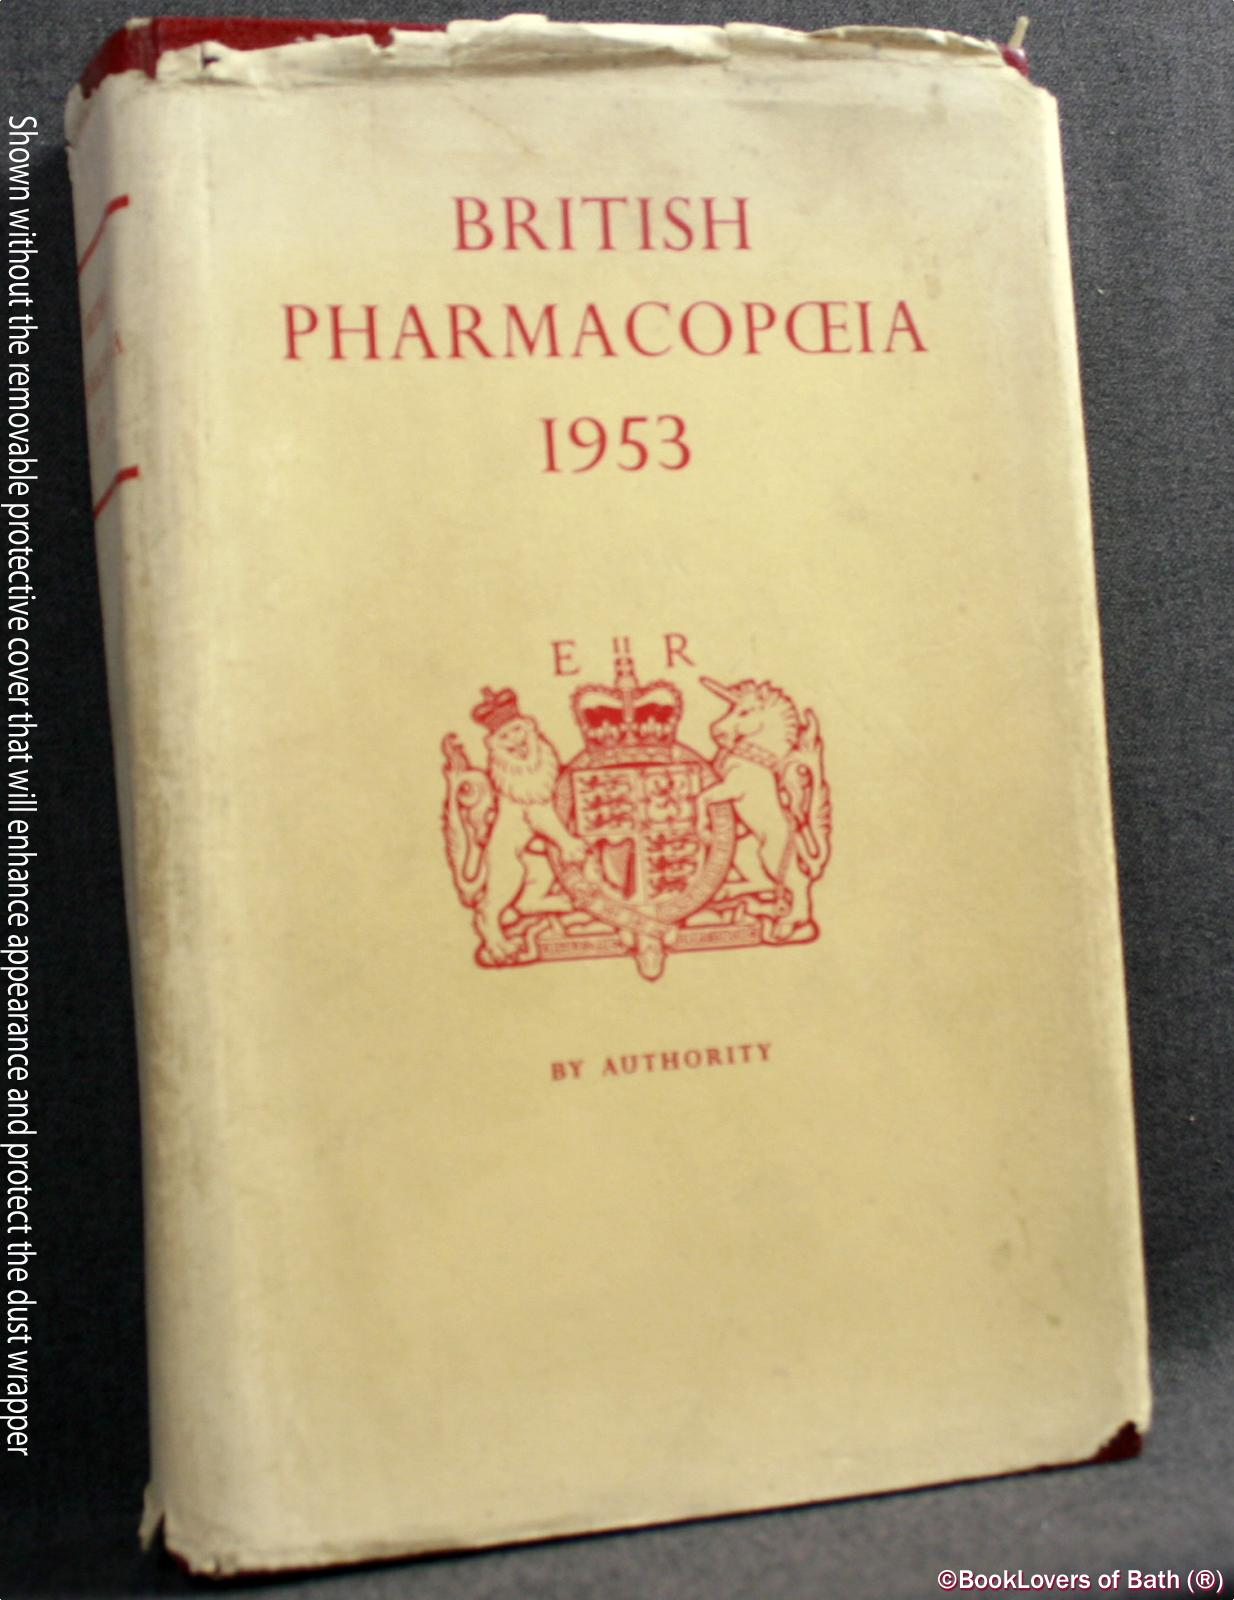 British Pharmacopoeia 1953: Published Under the Direction of the General Medical Council Pursuant to the Medical Council Act 1862 and the Medical Act 1950 - Anon.